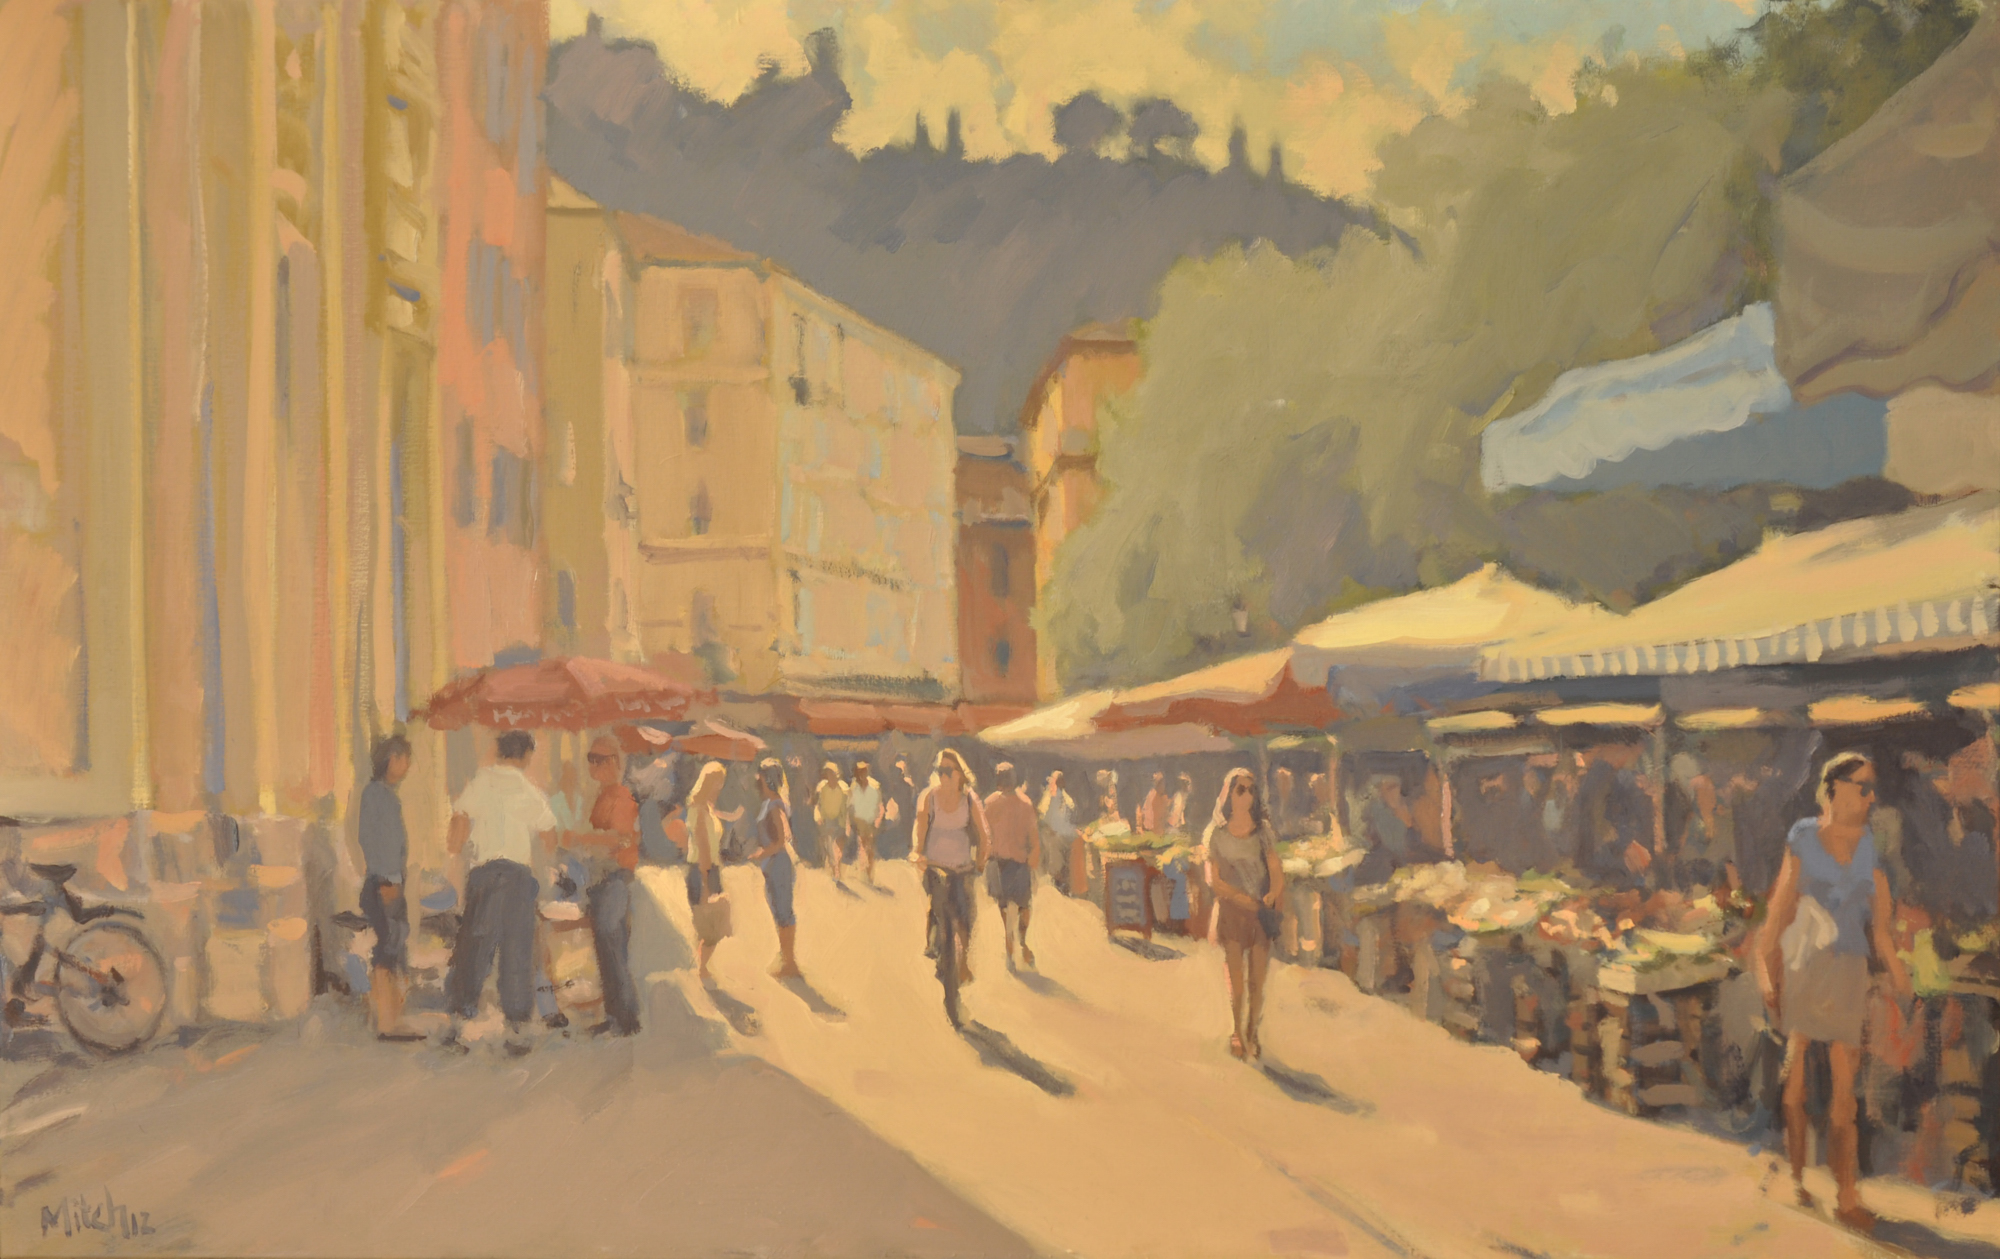 Cours Saleya, Nice, Morning light